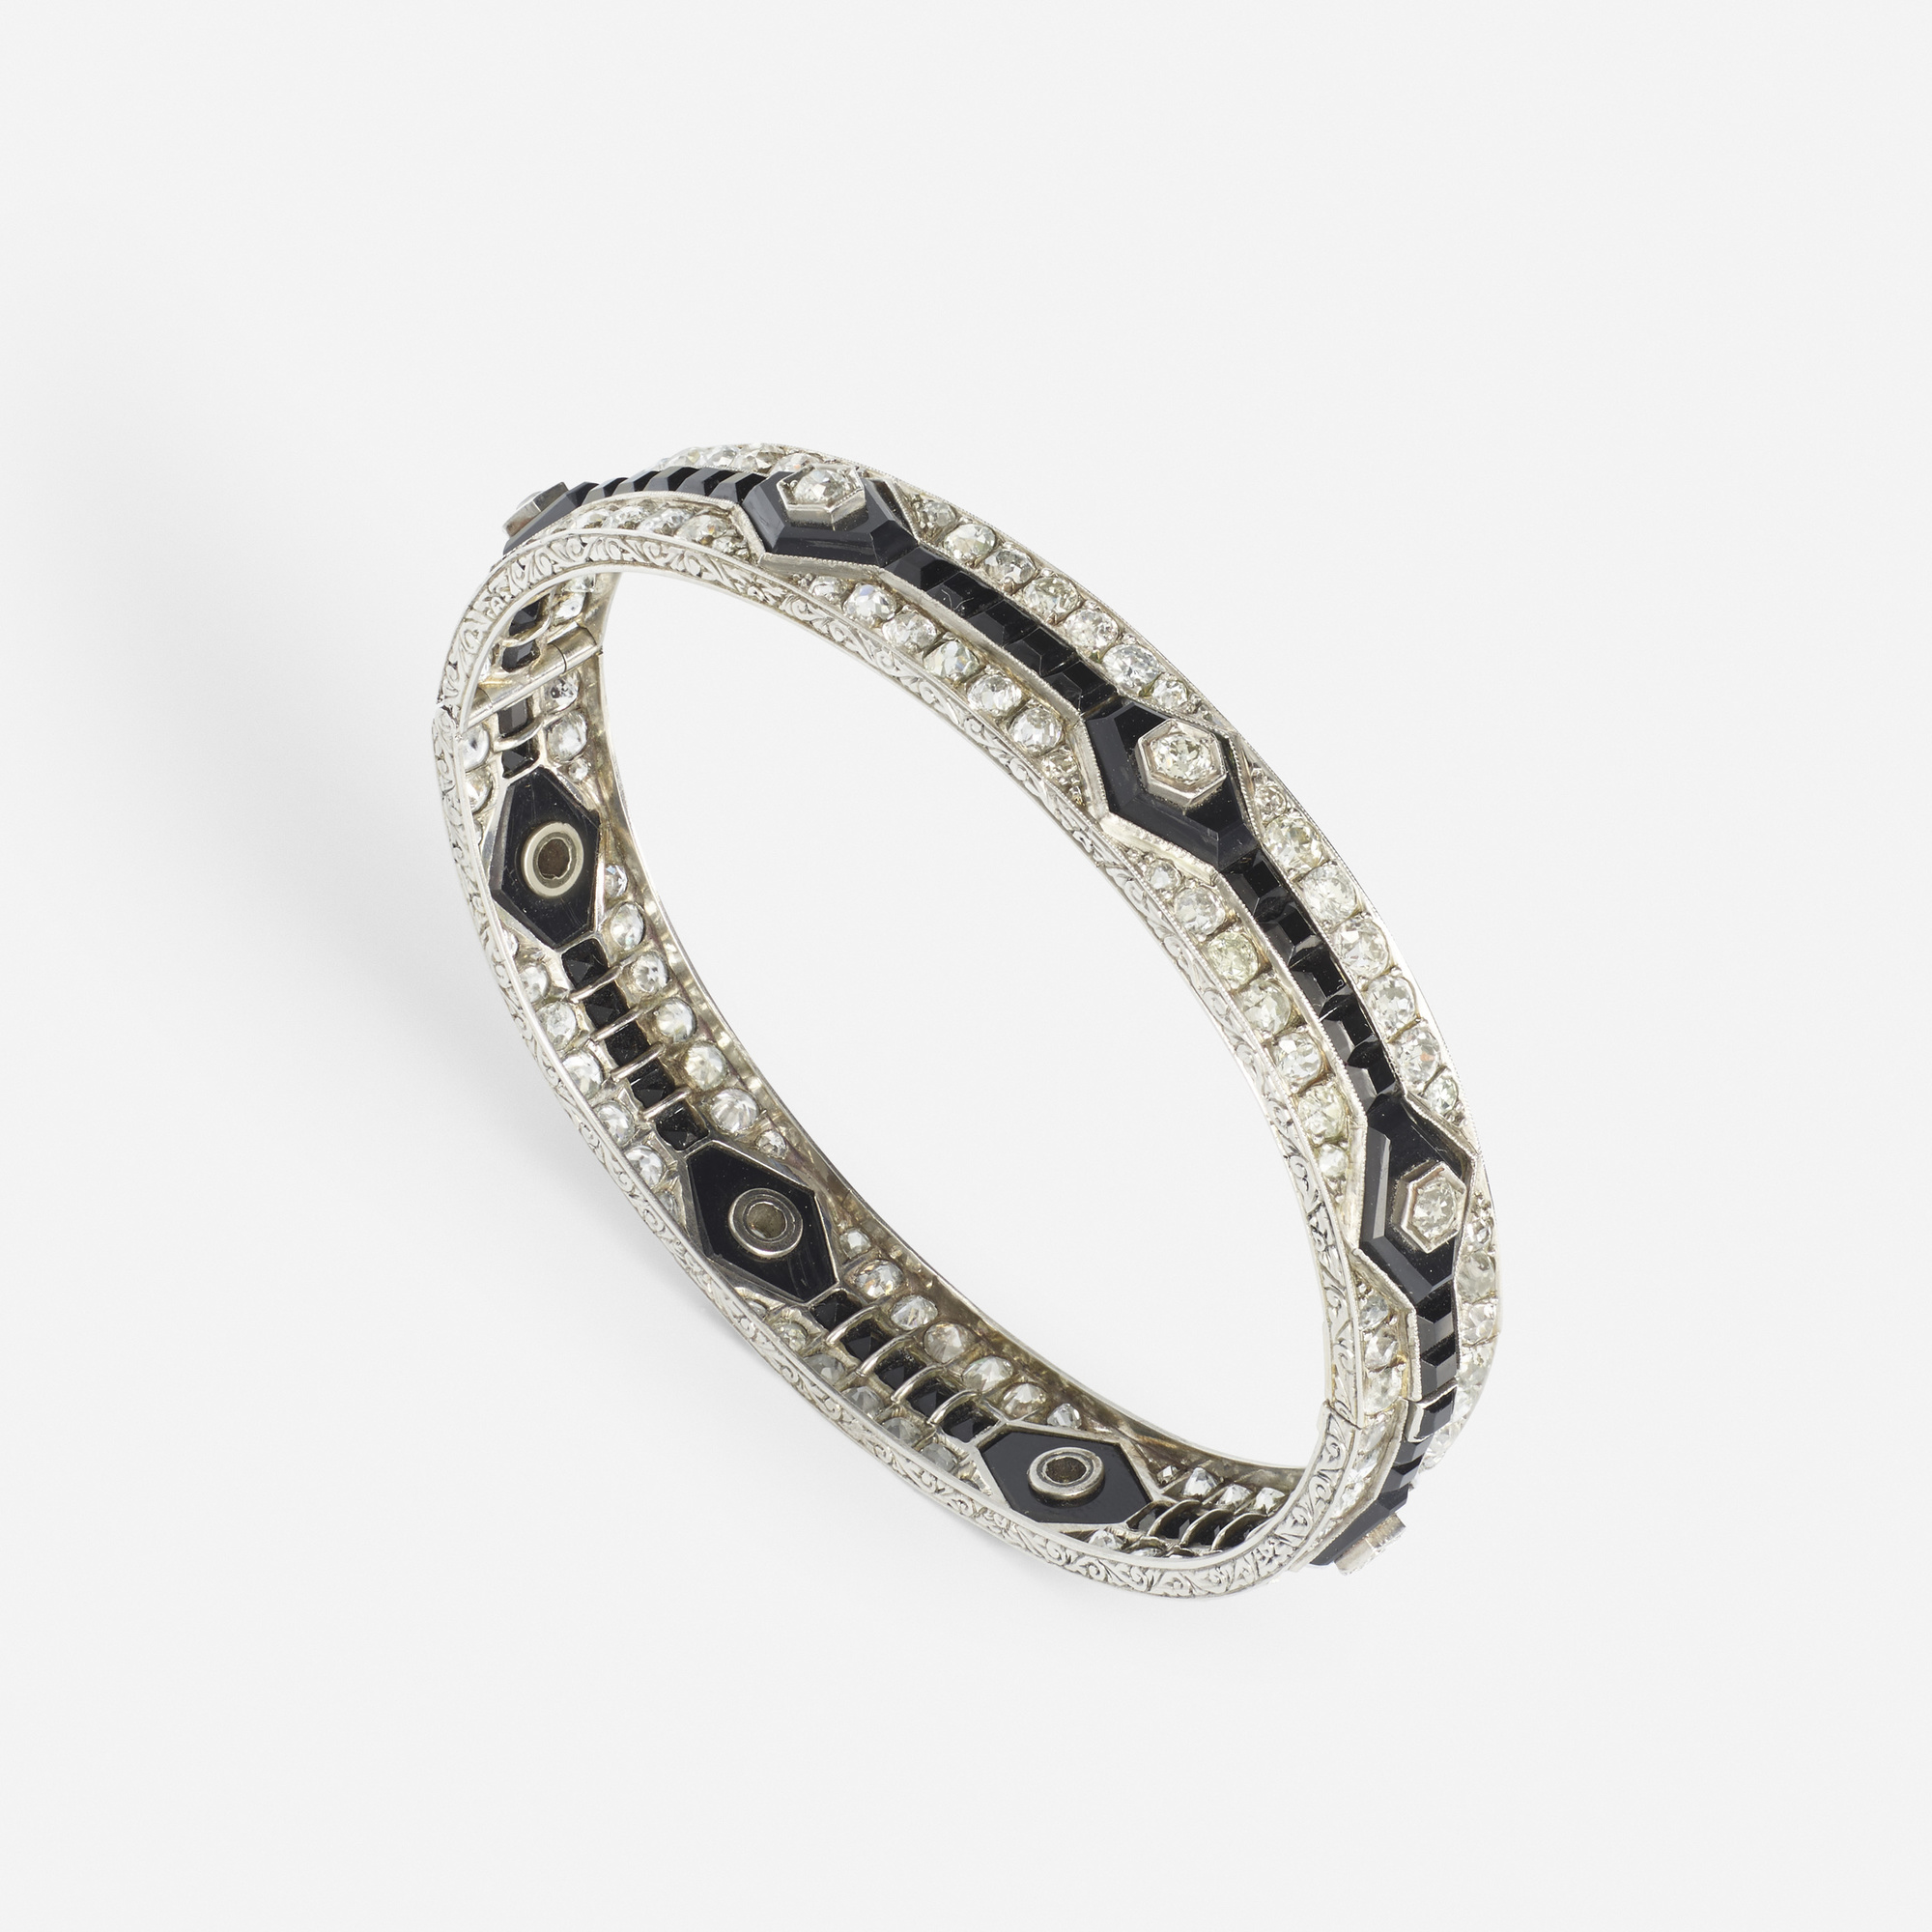 128: Art Deco / A platinum, diamond and onyx bangle (1 of 2)